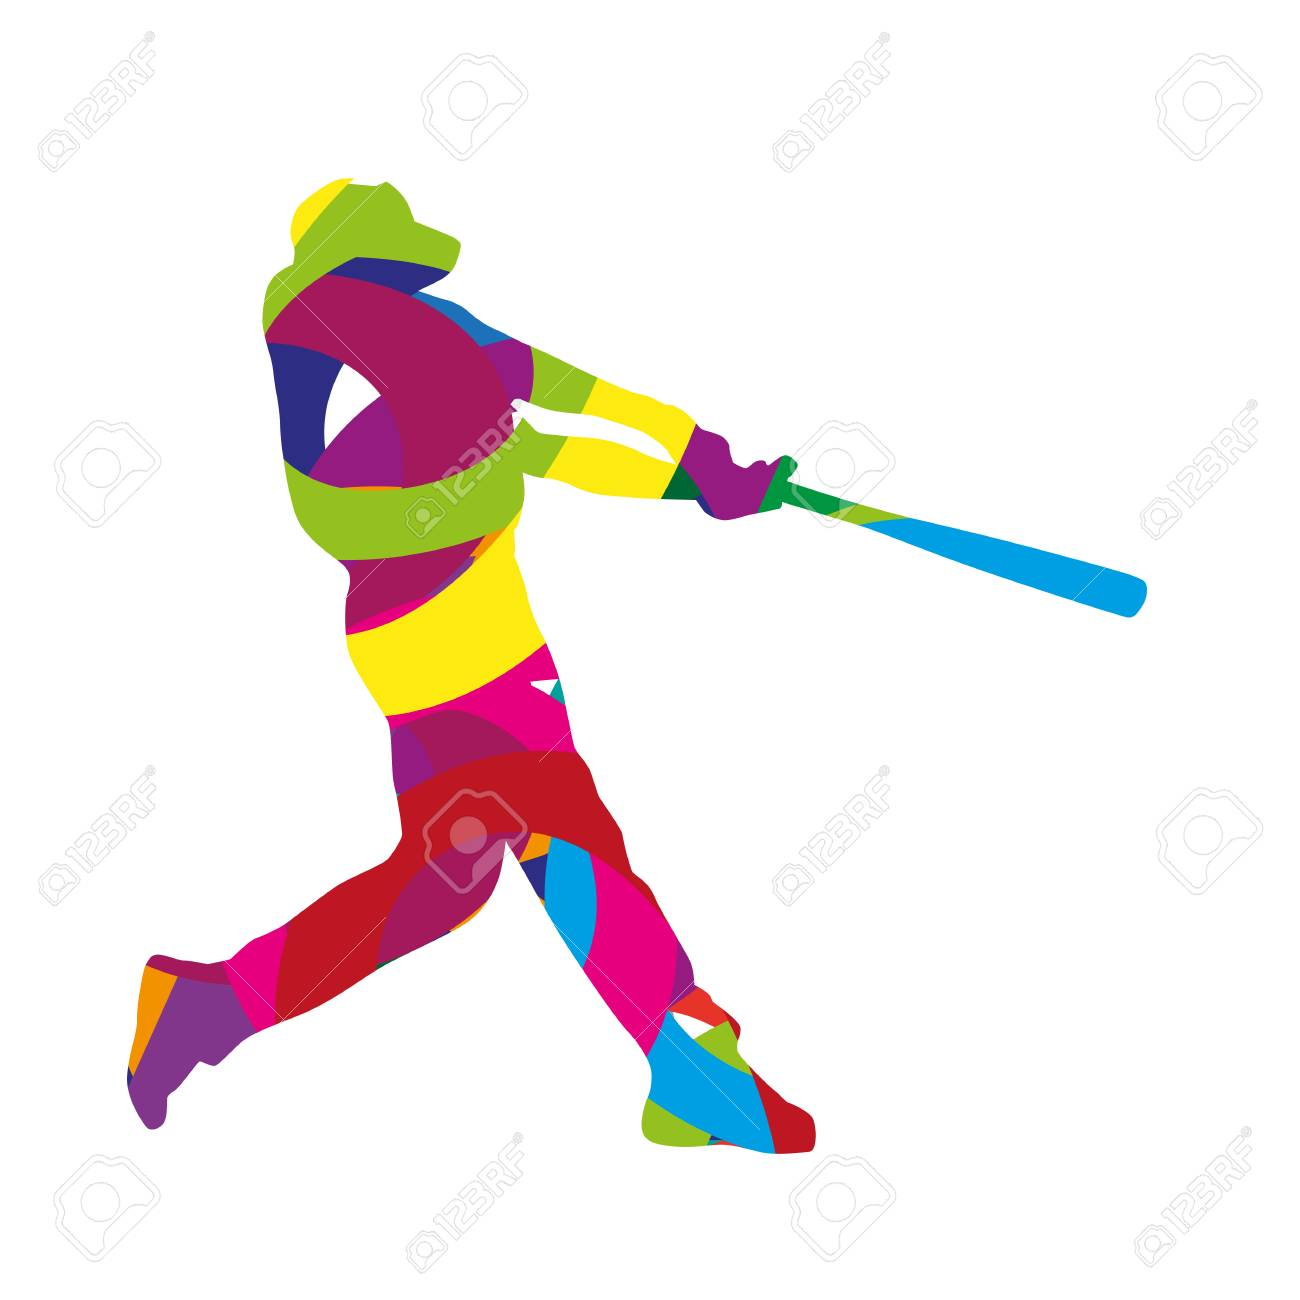 hight resolution of abstract colorful baseball batter stock vector 38567068